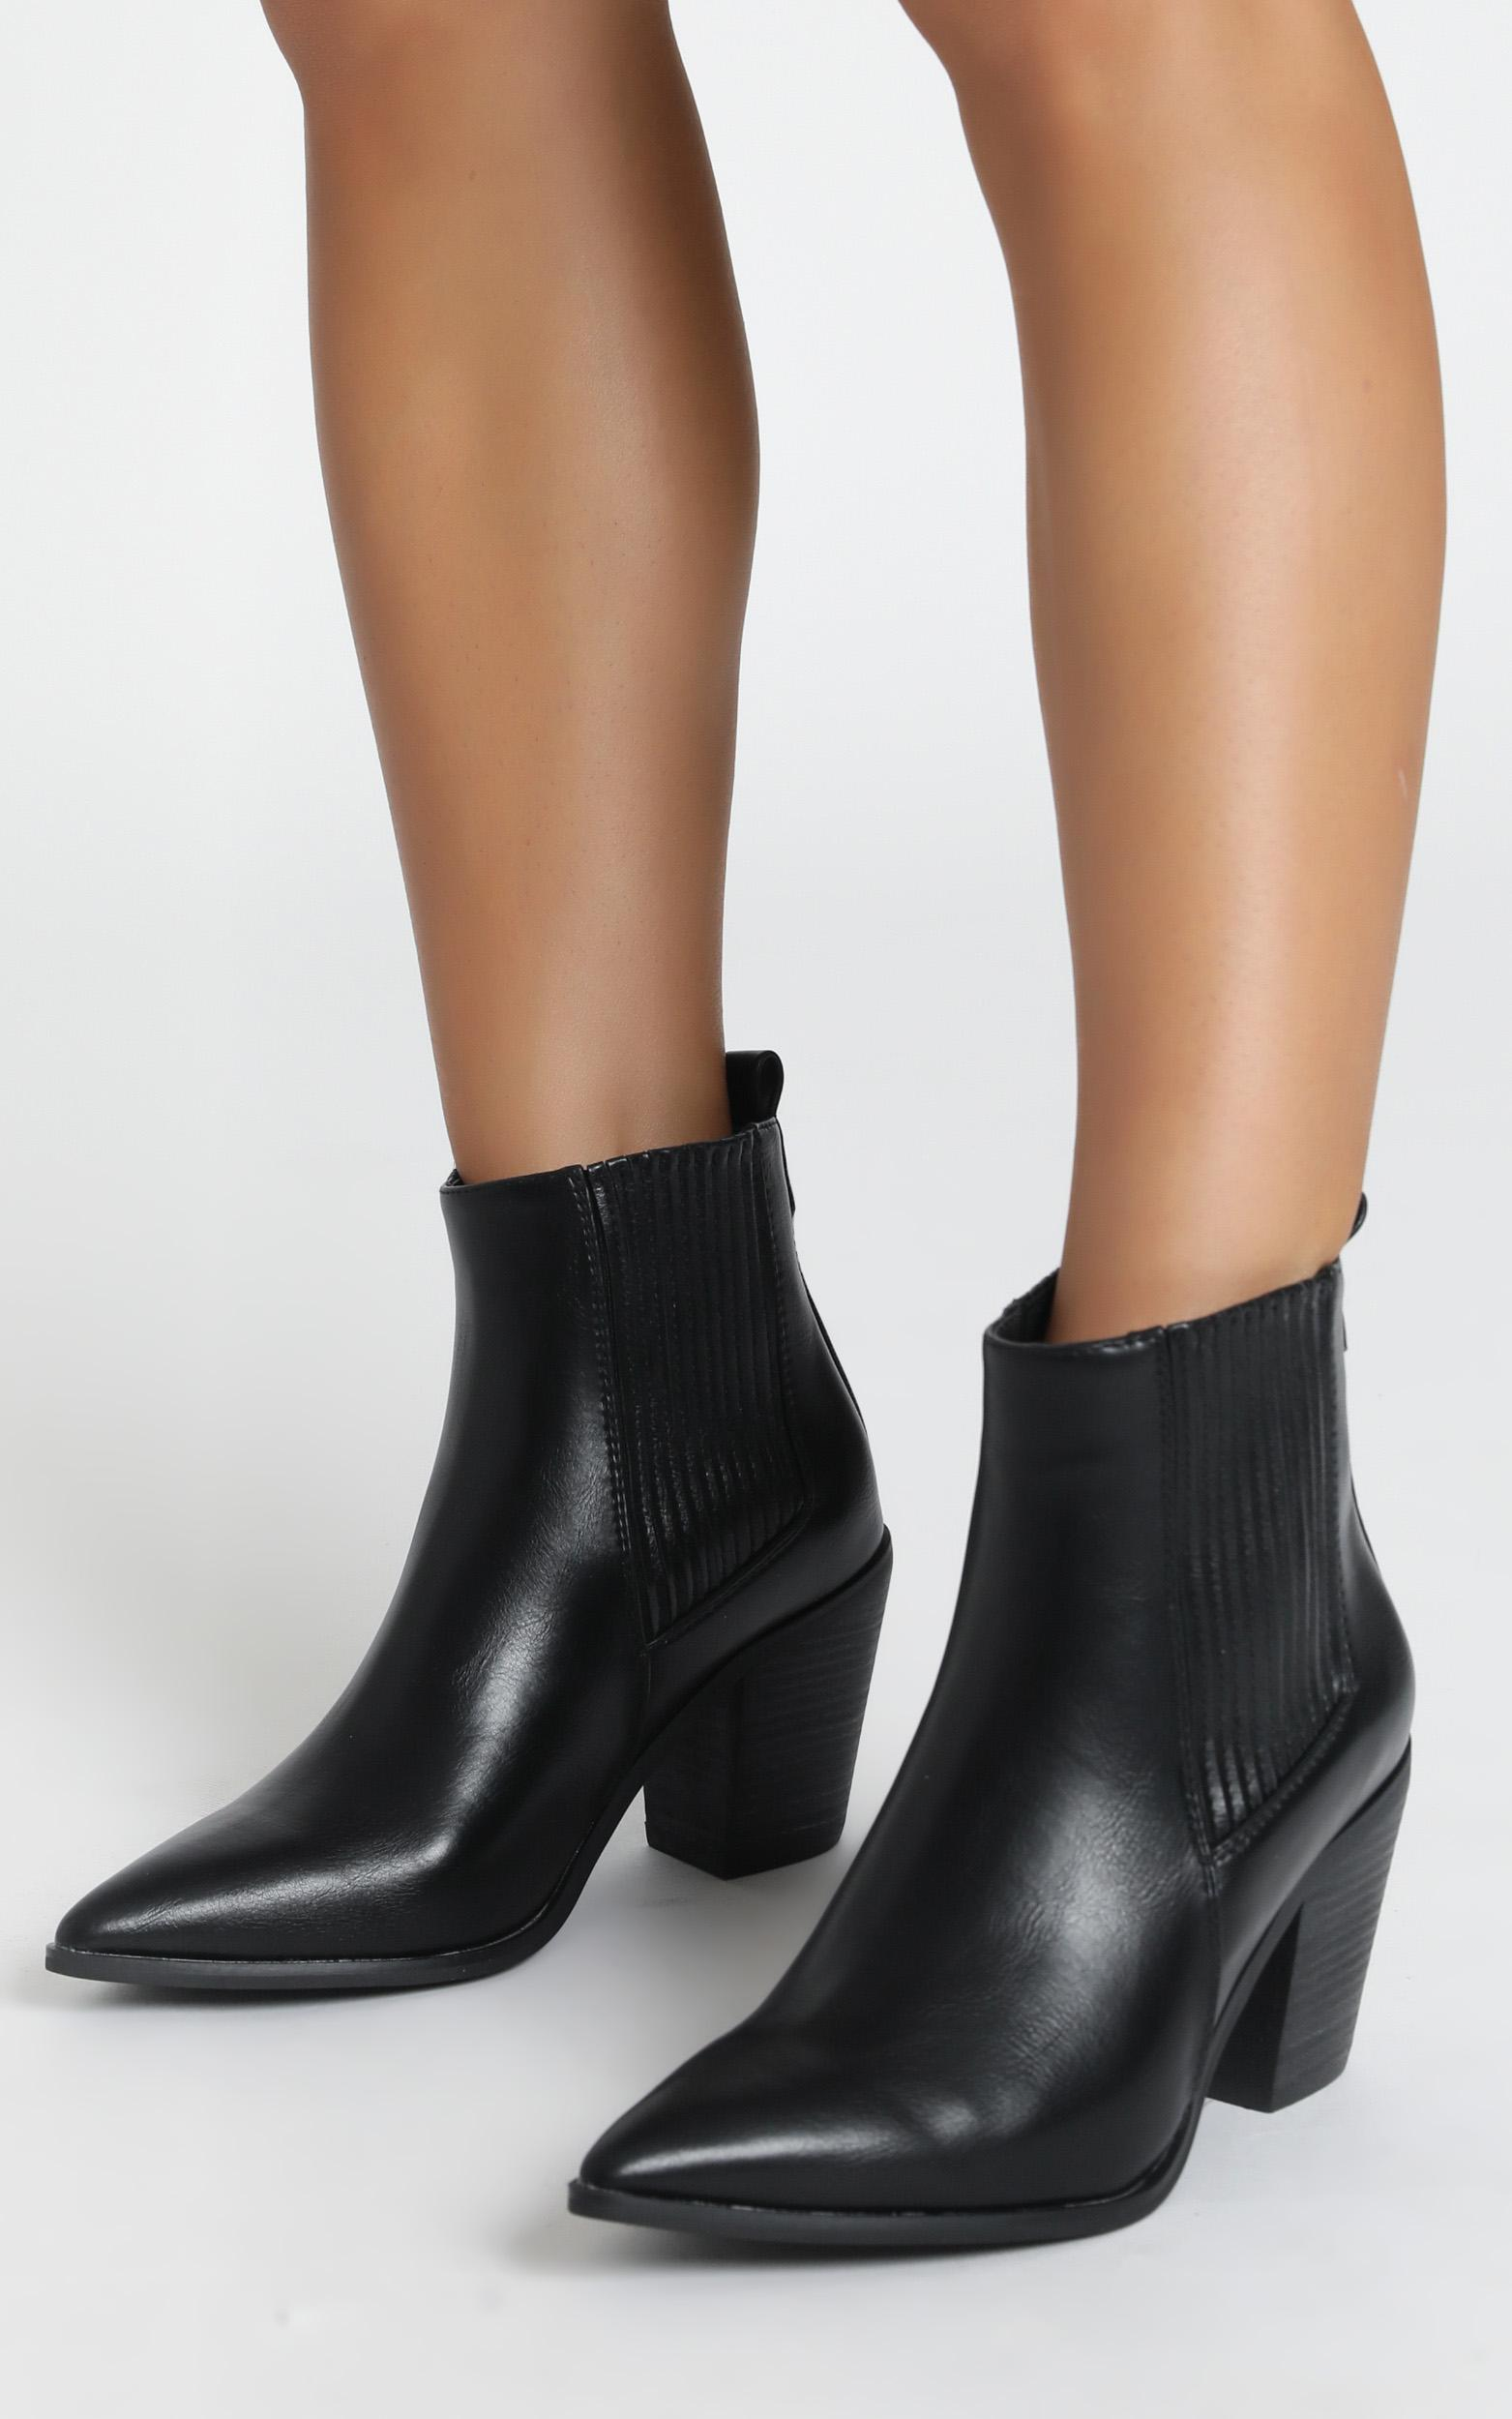 Therapy - Winnie boots in black - 10, Black, hi-res image number null